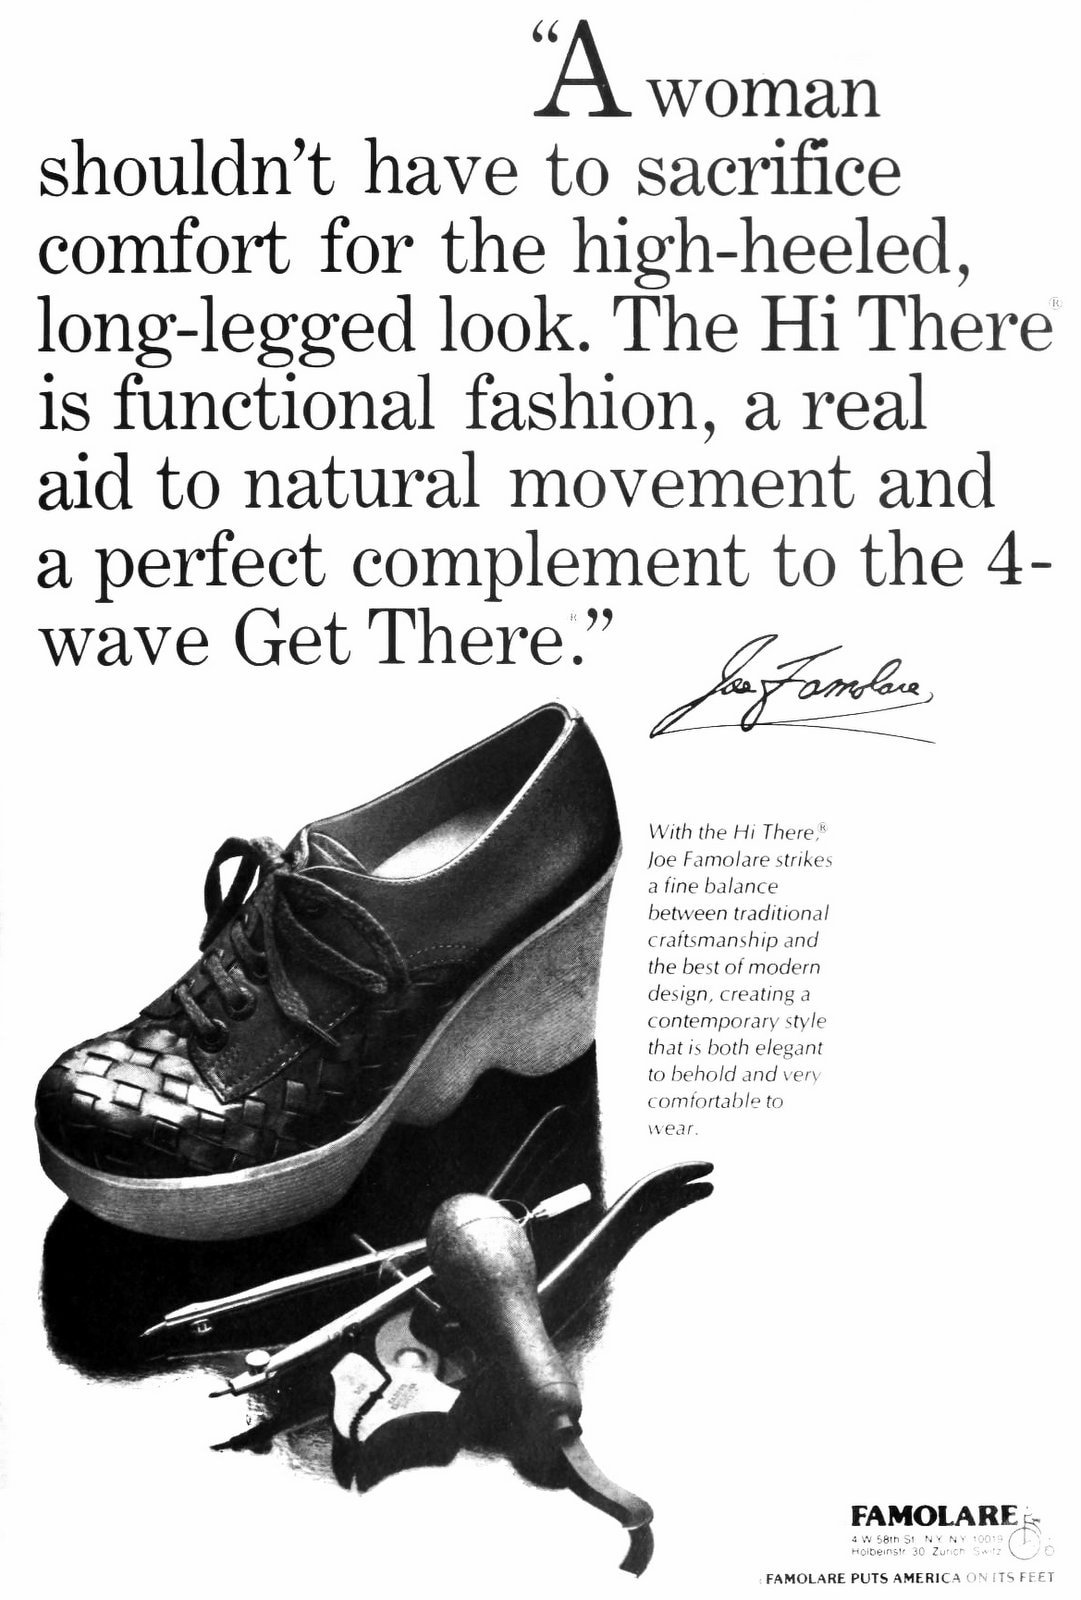 Vintage Famolare shoes - Hi There and Get There (1977)